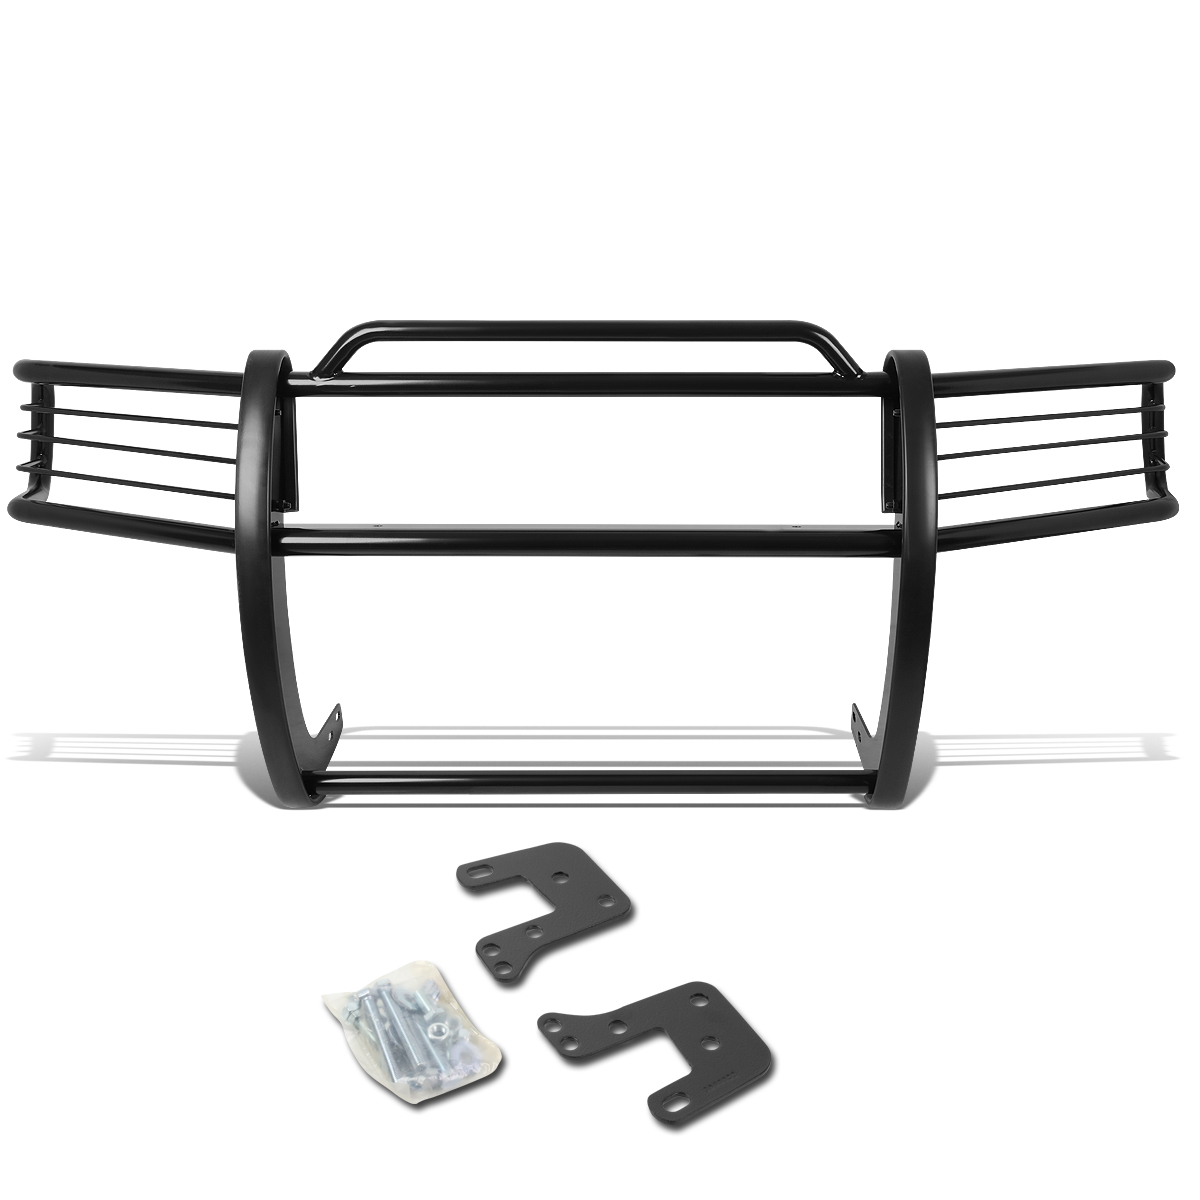 For 94-02 Dodge Ram Pickup Truck Front Bumper Protector B...